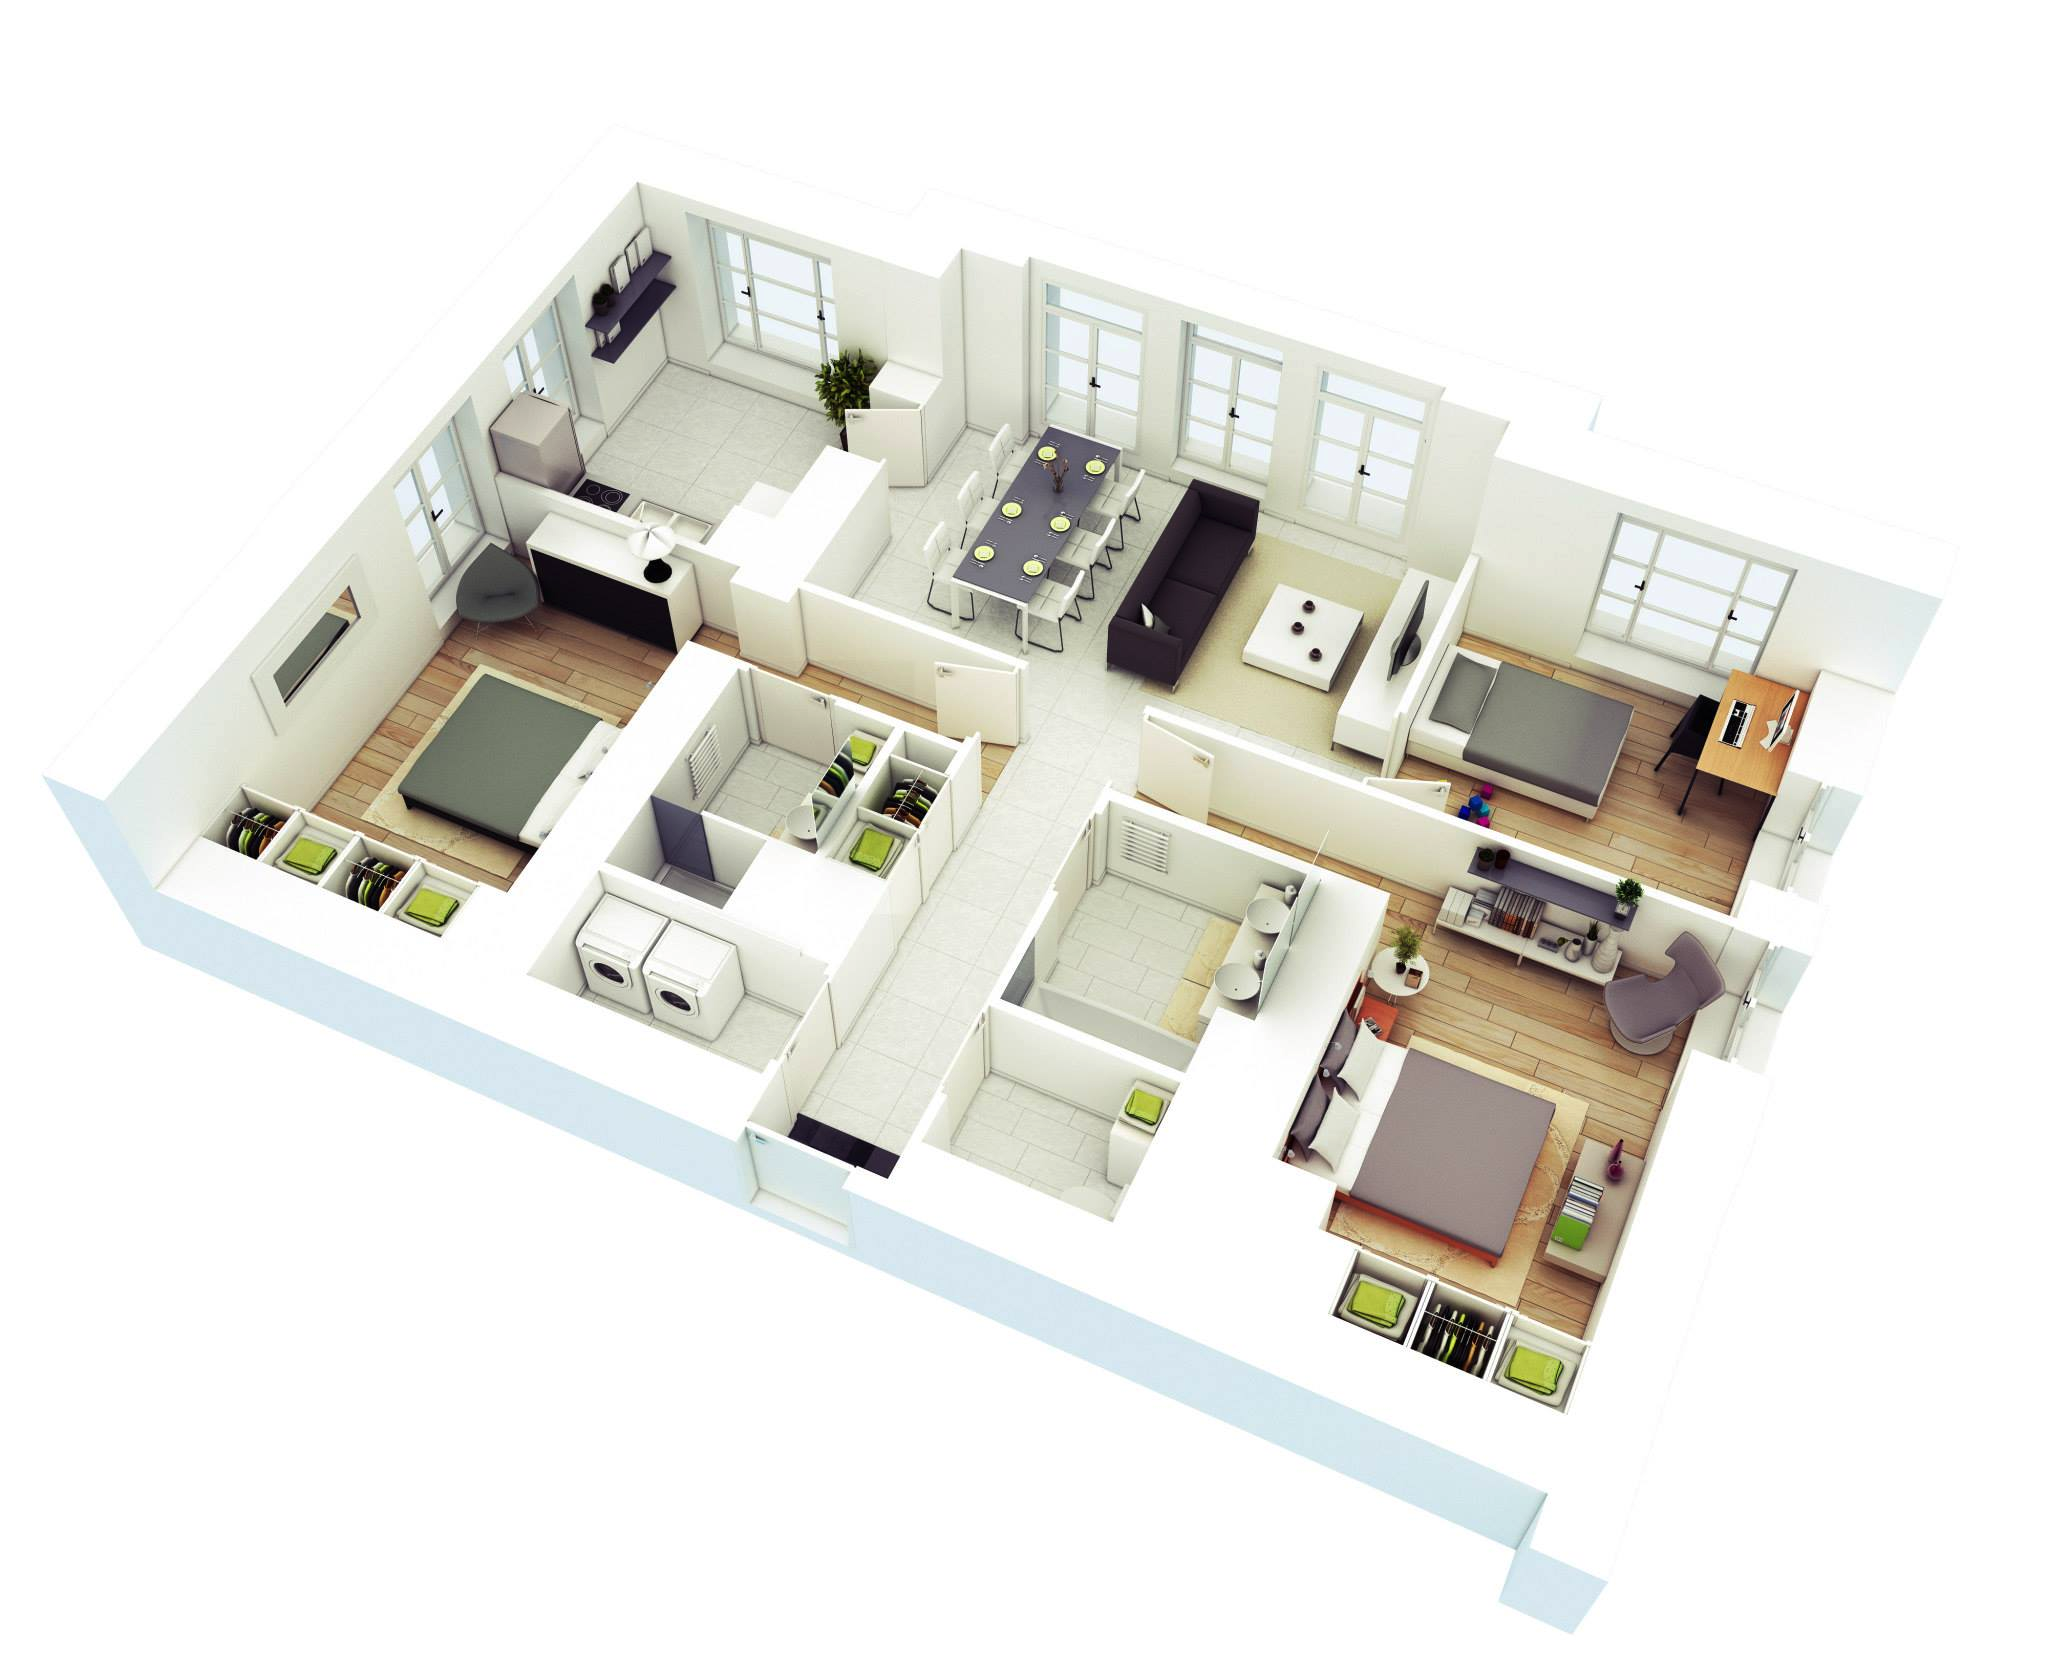 25 More 3 Bedroom 3D Floor Plans | Architecture & Design Three Bedroomed House Design on three bedroom house design, three roomed house design, three storey house design,